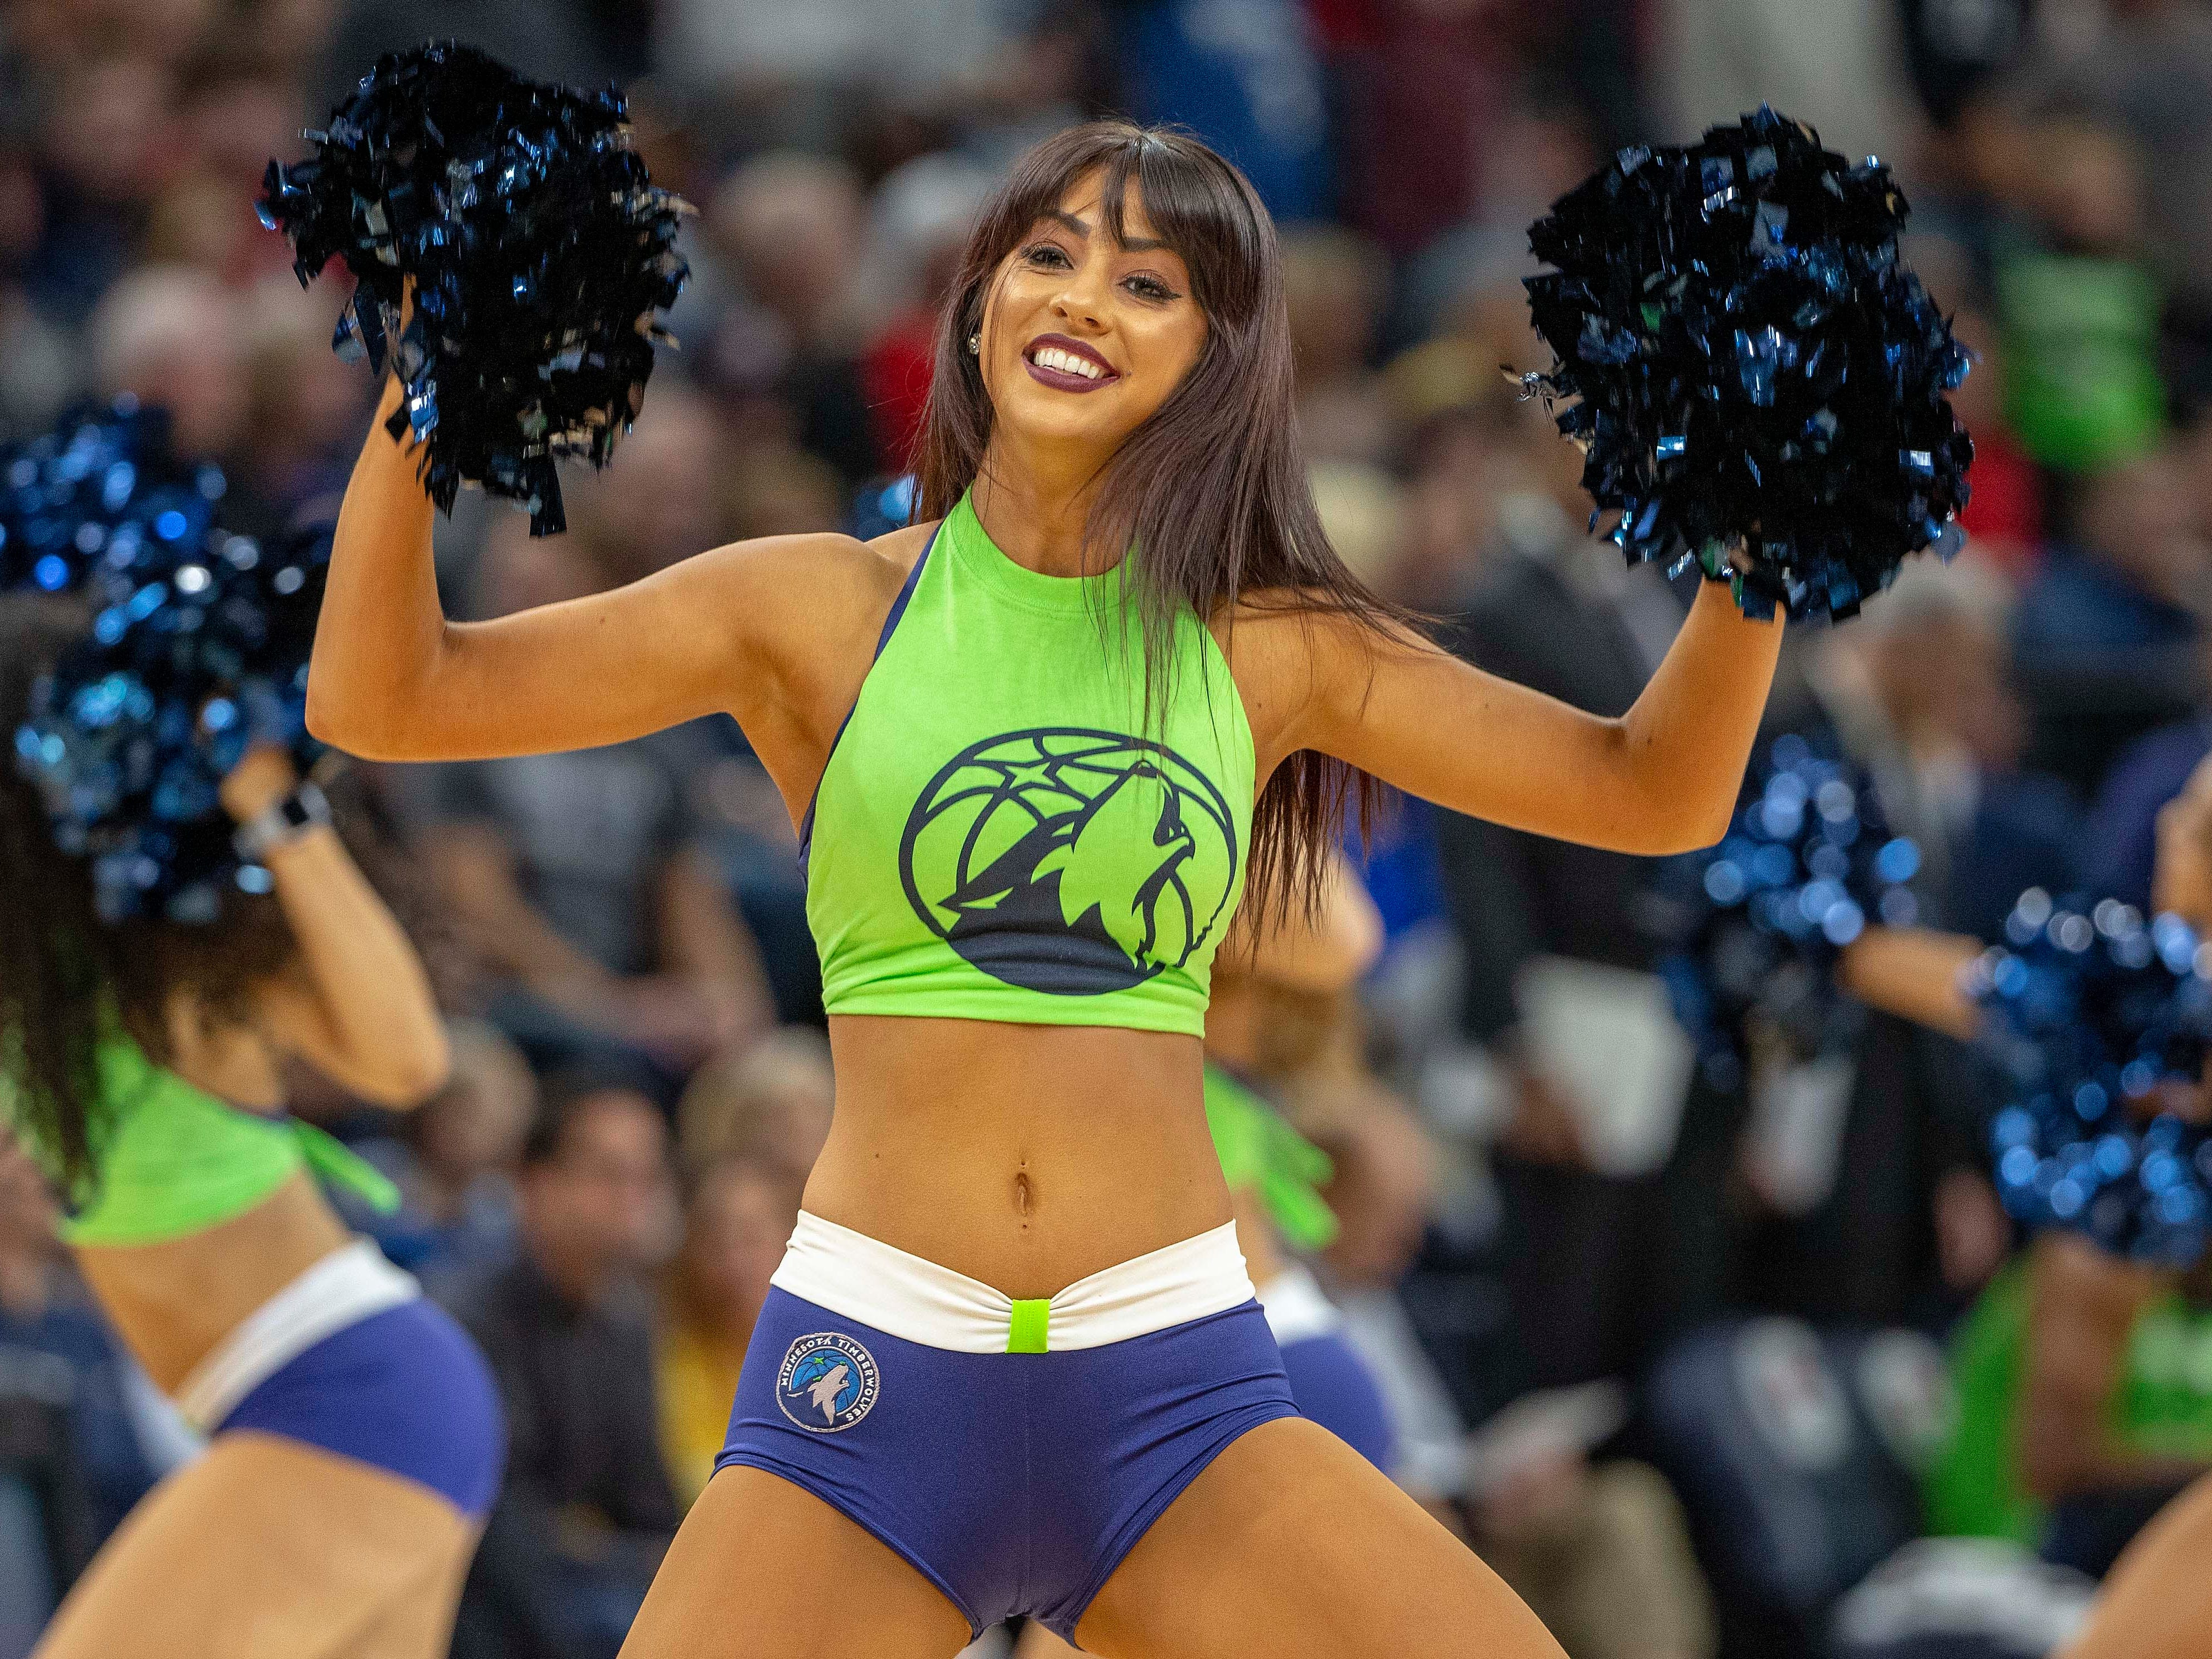 Nov. 24: Timberwolves dancers perform during a break in the action against the Bulls at Target Center.